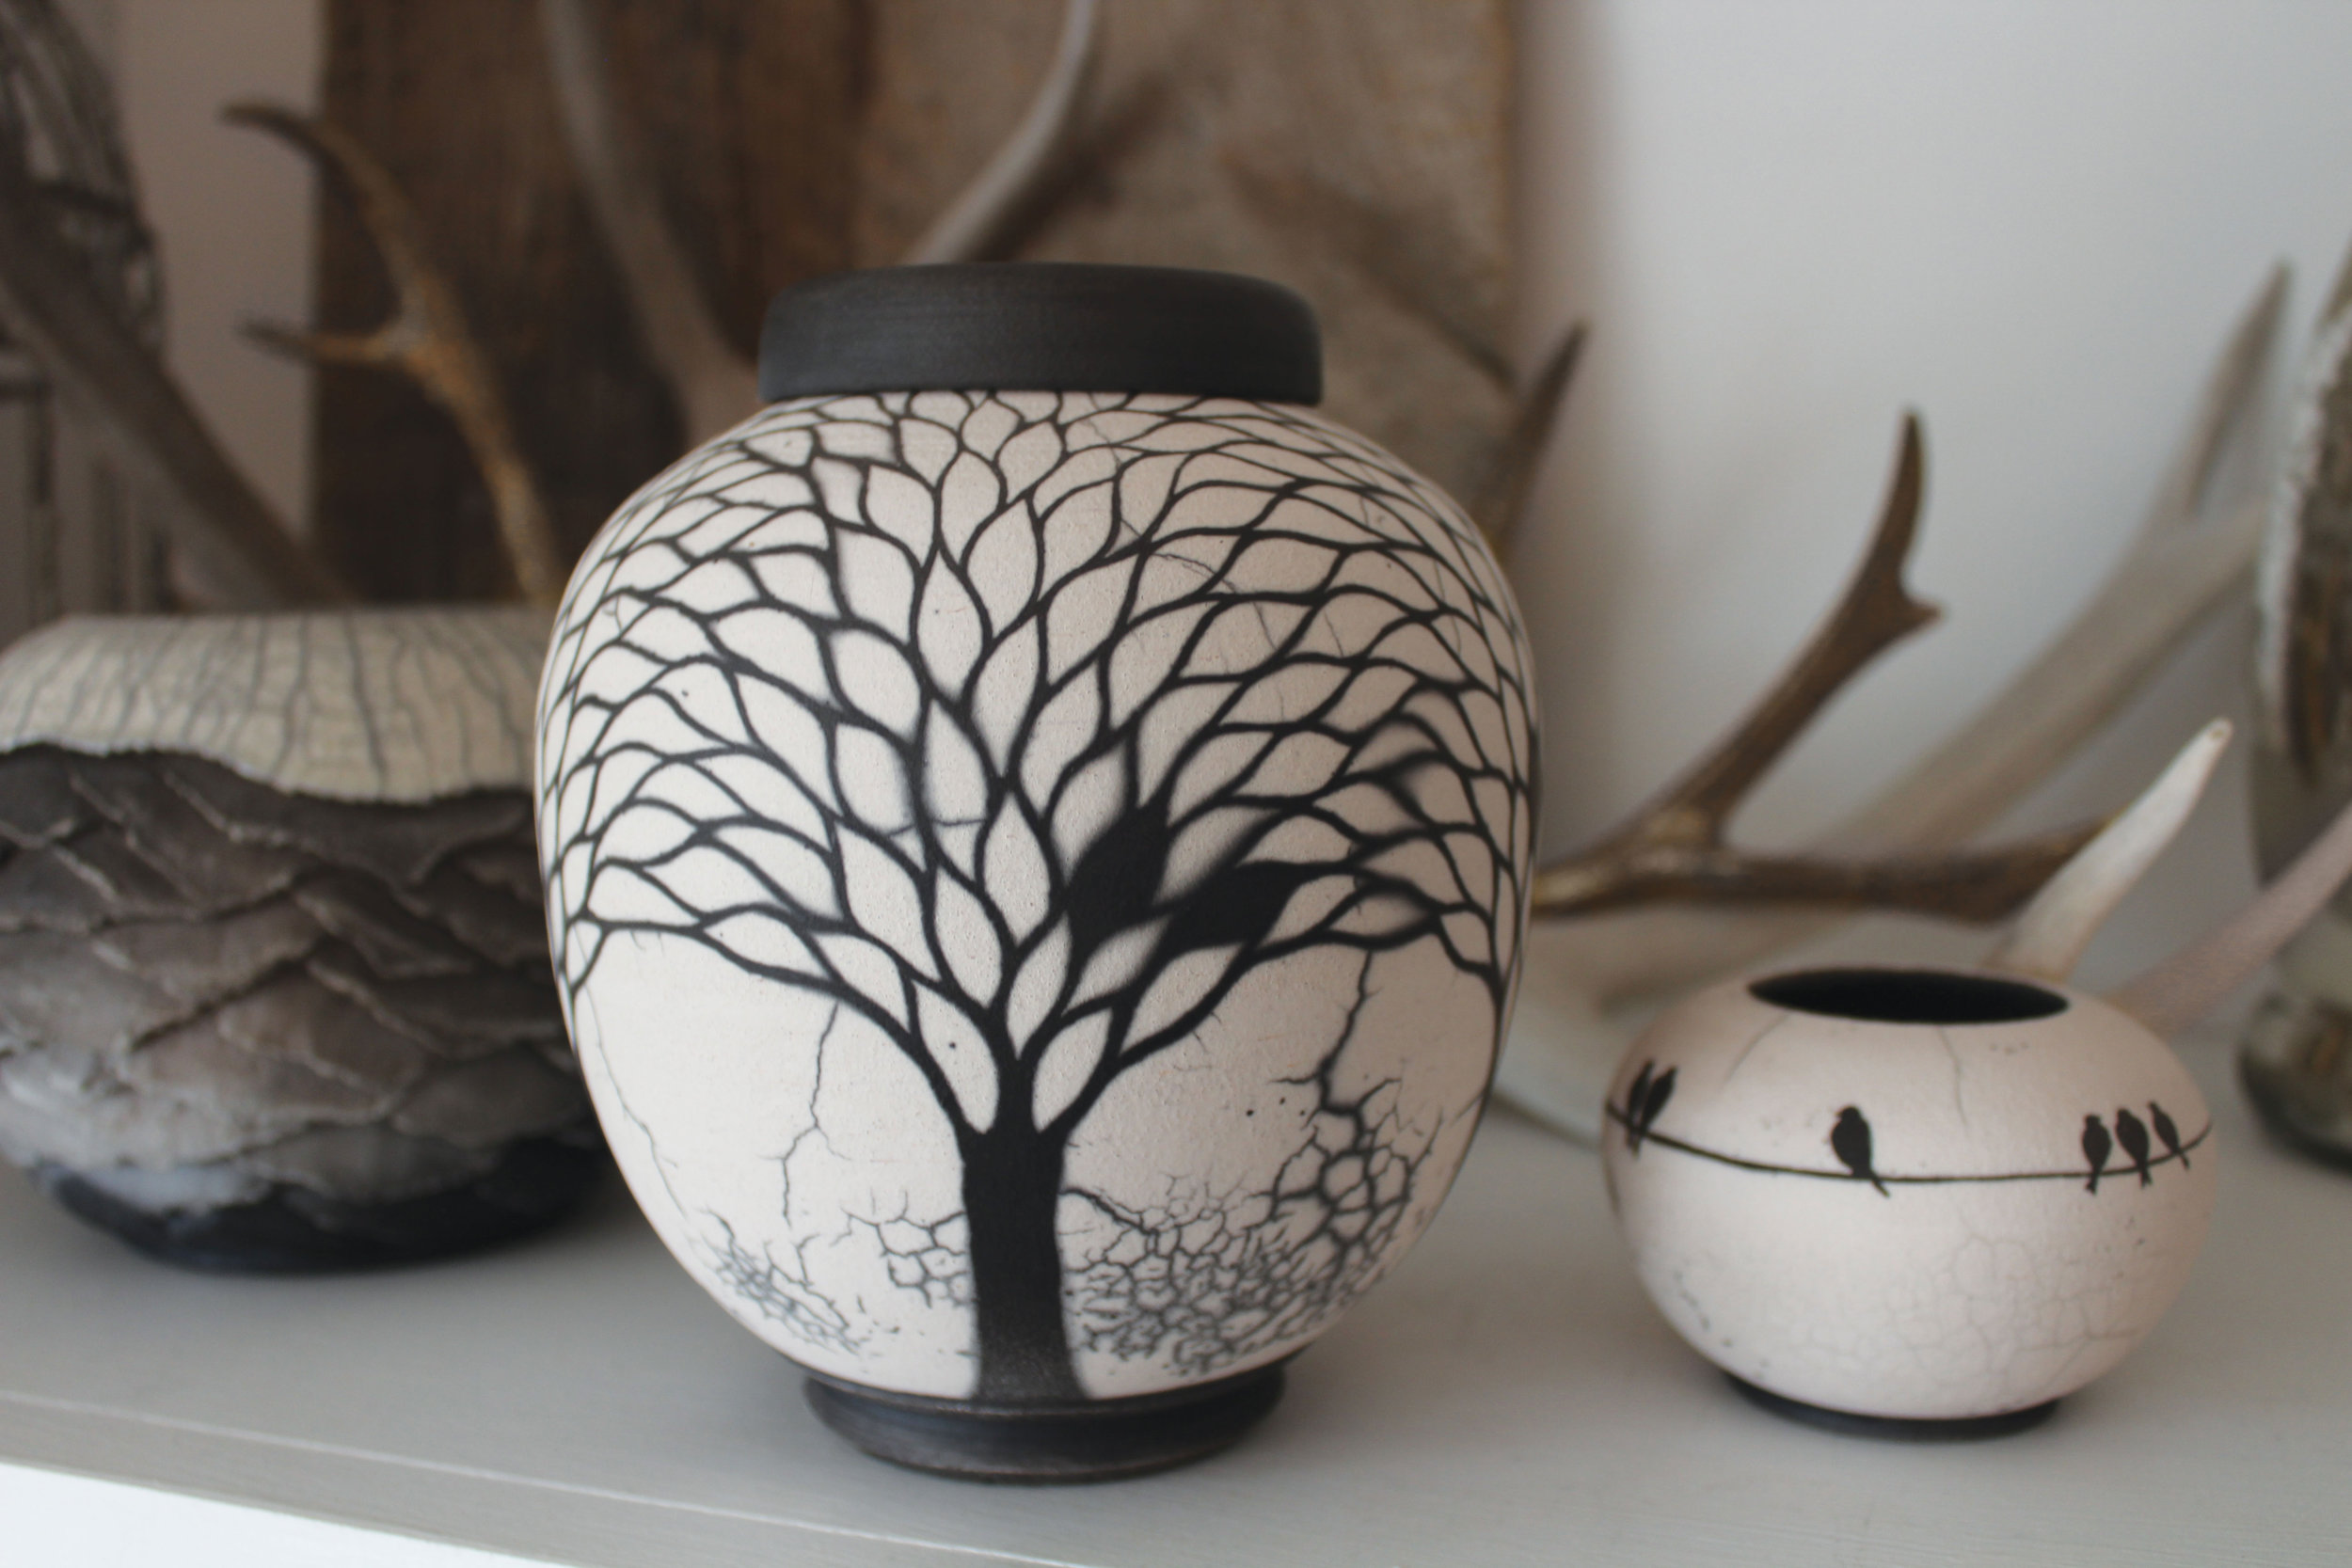 Raku - The trapped smoke on these unique pieces will capture your imagination.